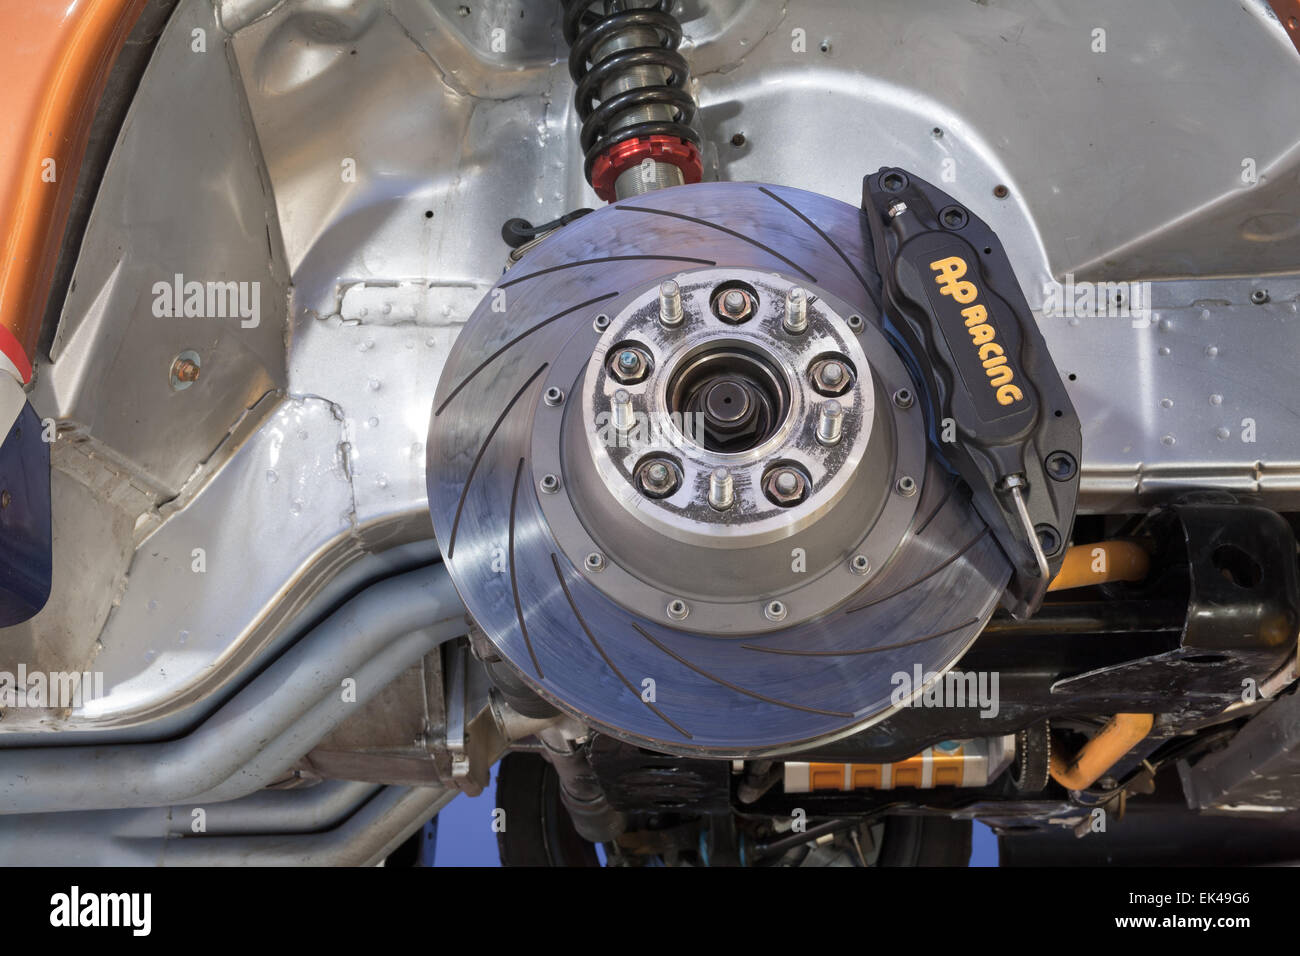 Car brake disc and caliper on a vehicle modified for motor sport. - Stock Image